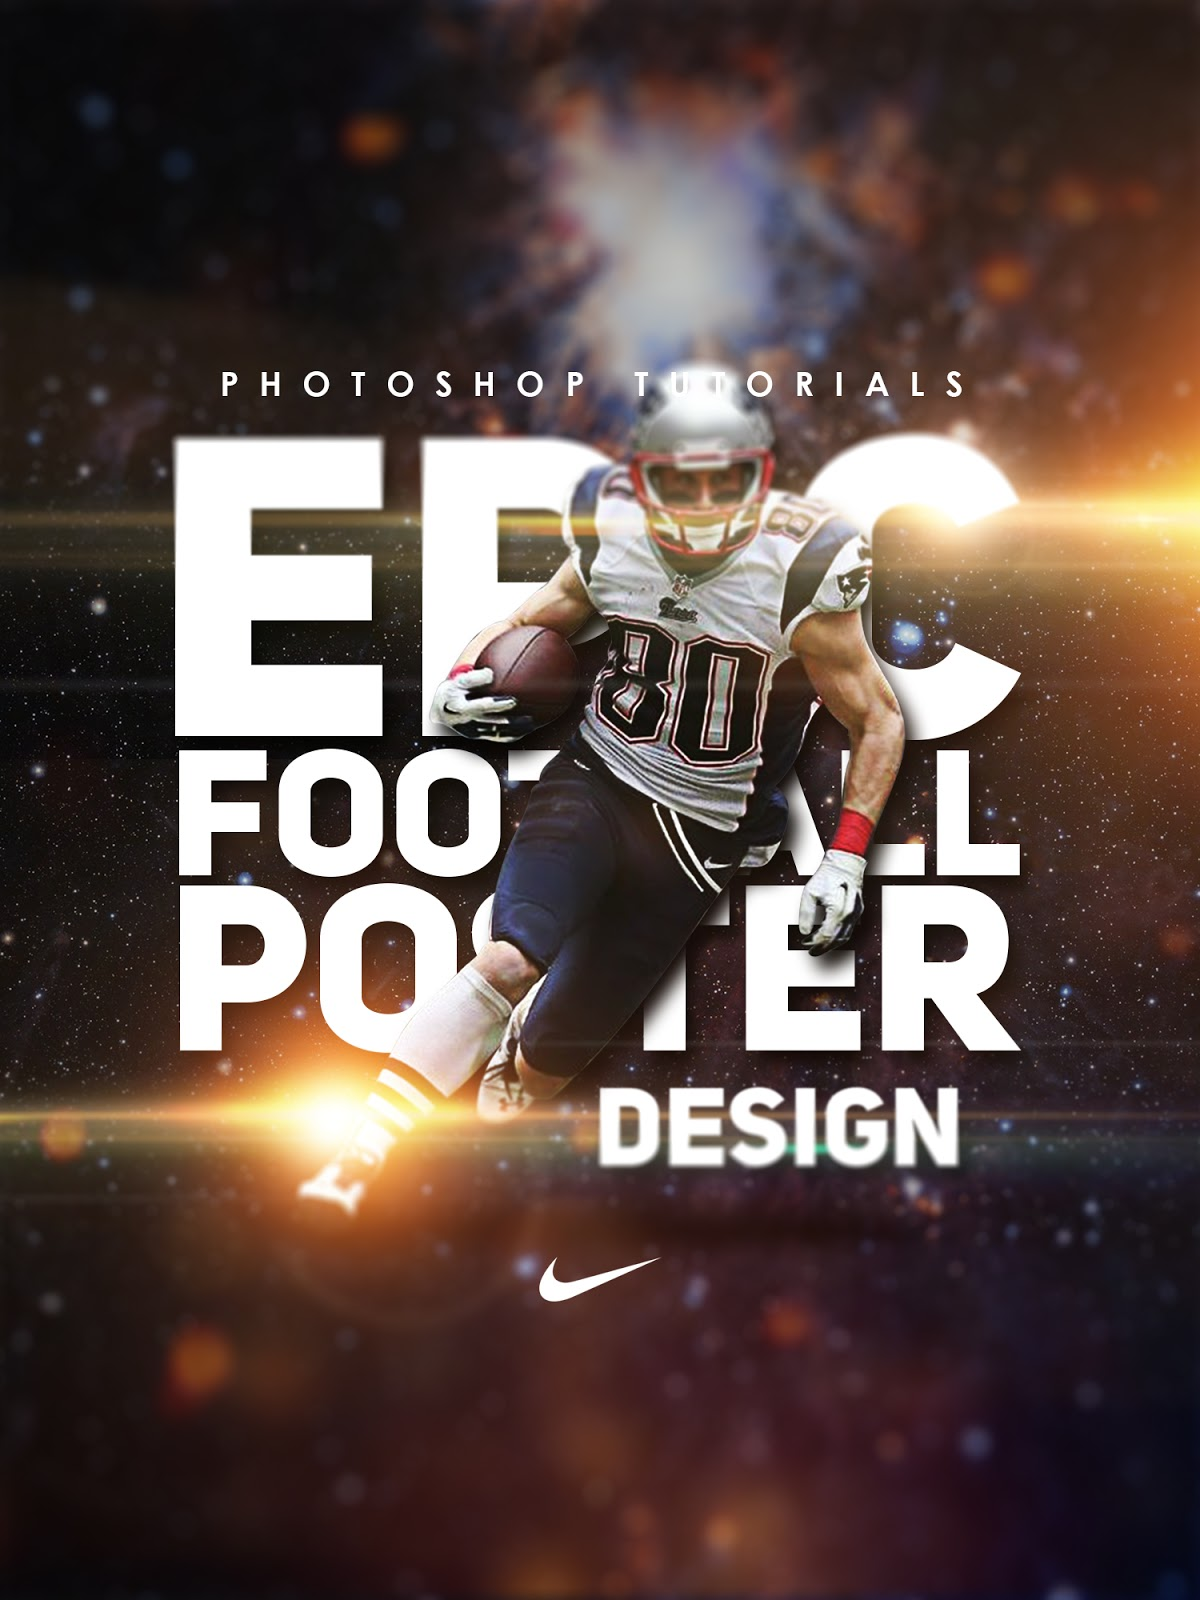 Free Download Epic Football Poster Design Psd File